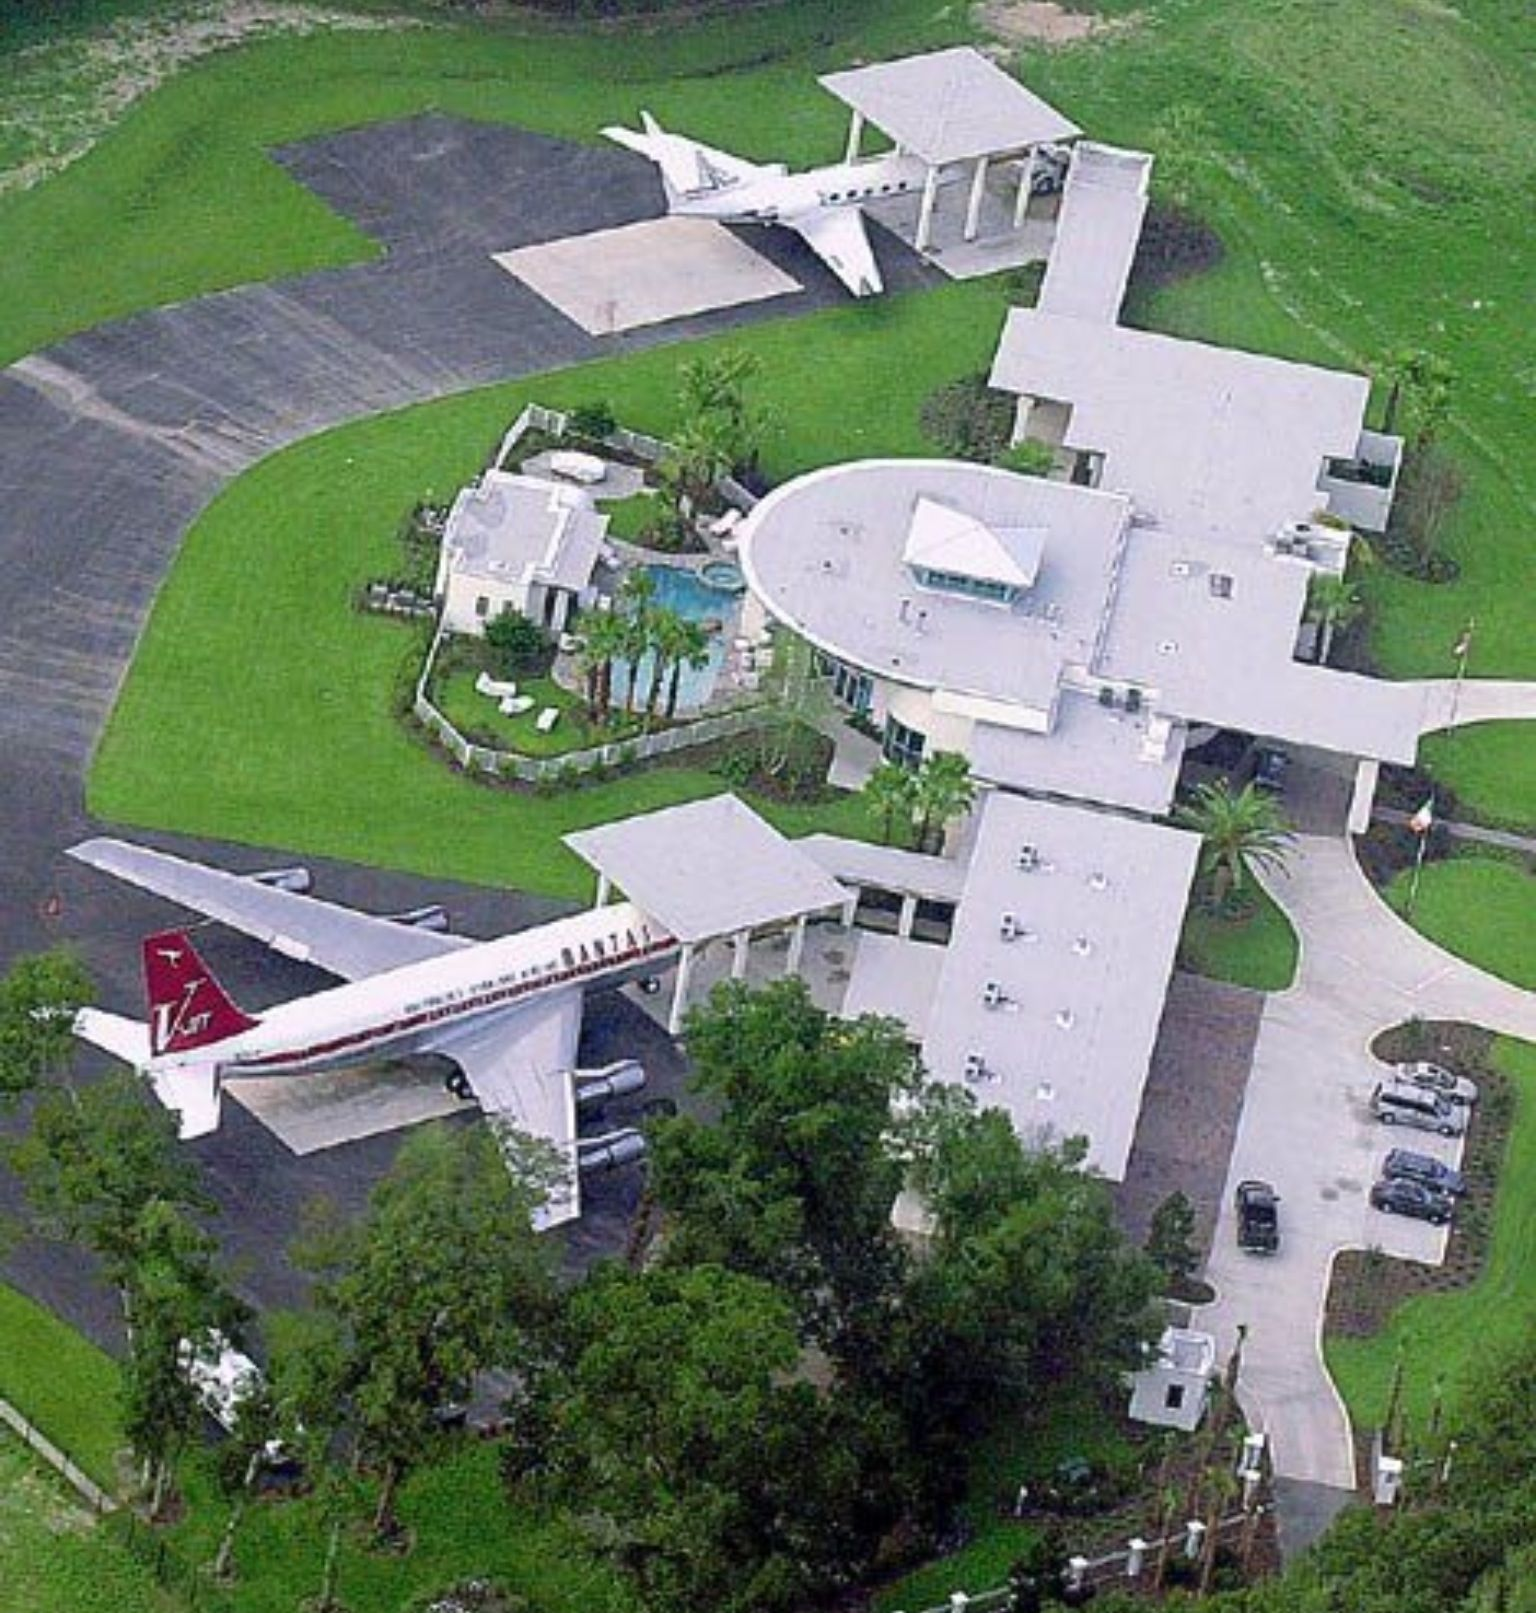 John travolta 39 s house in florida architechture for Celebrity houses in florida